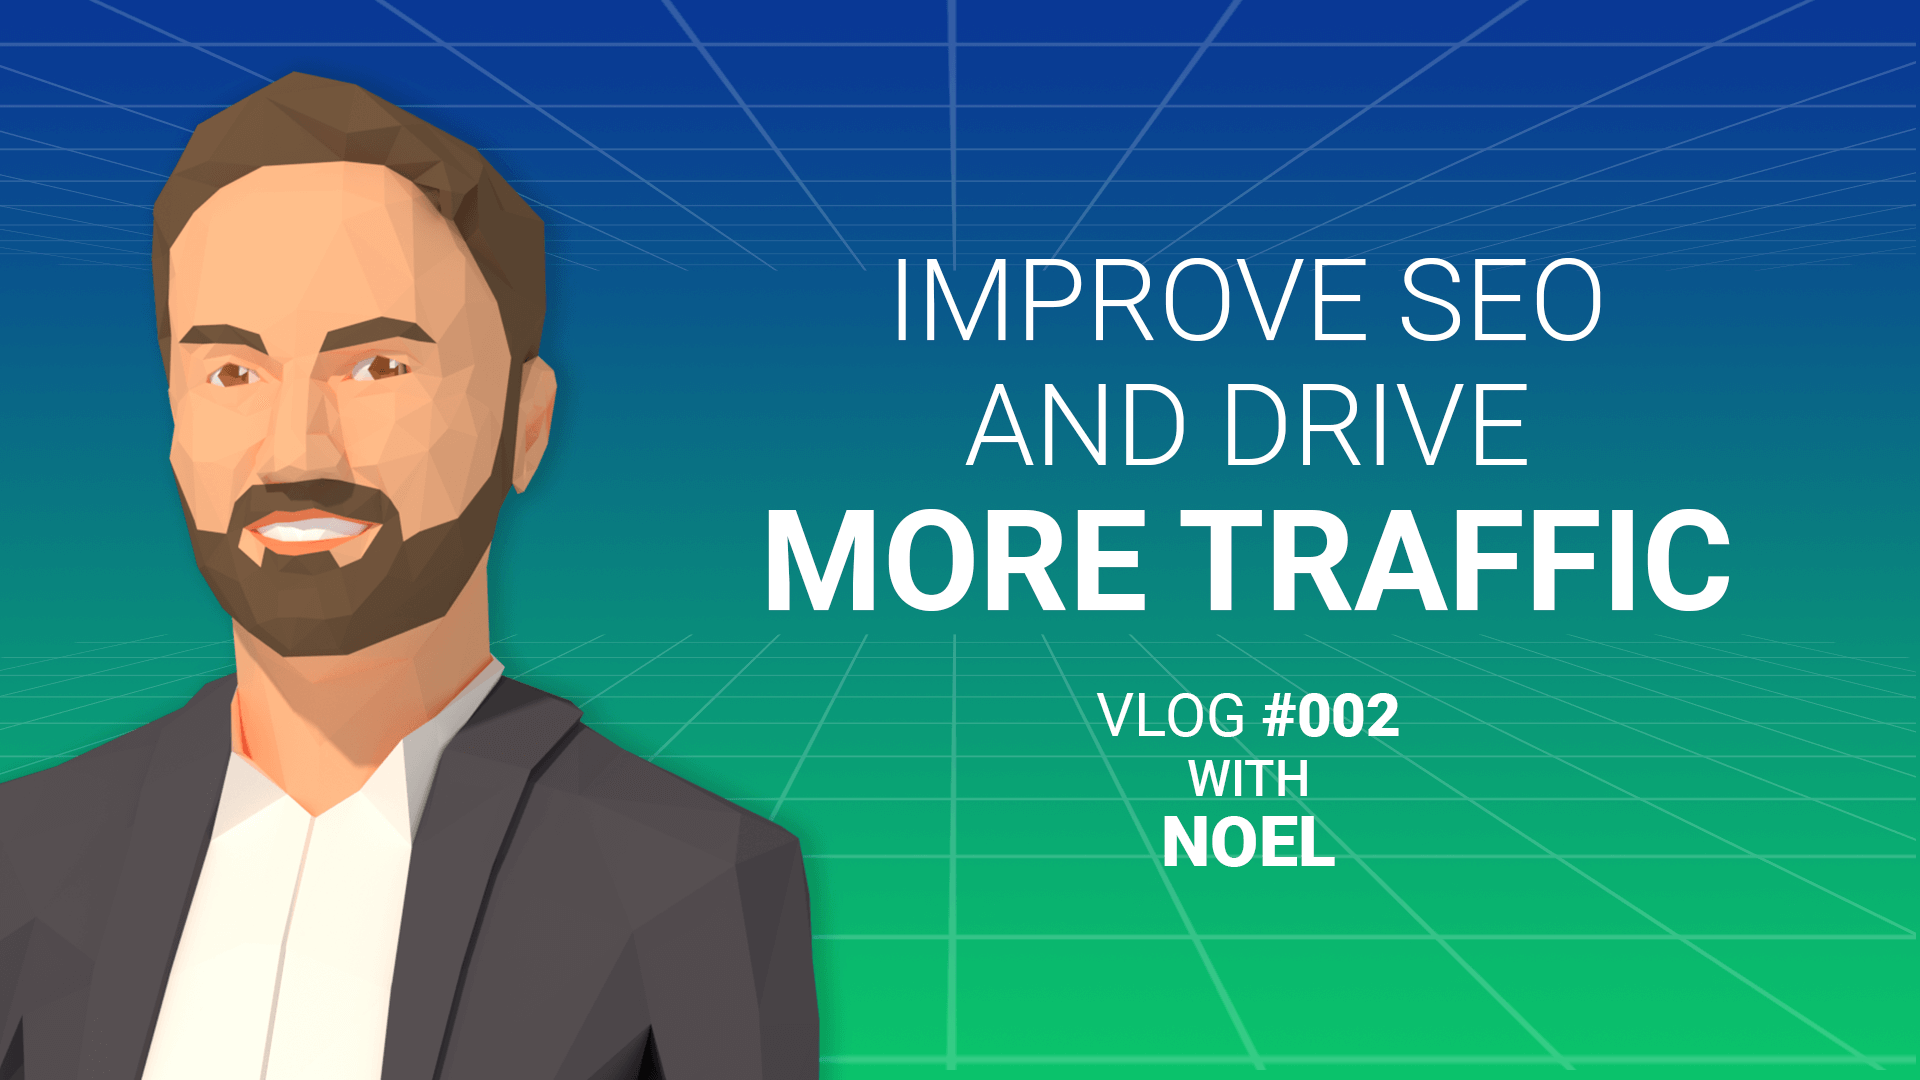 3 Tips to Improve SEO and Drive More Traffic